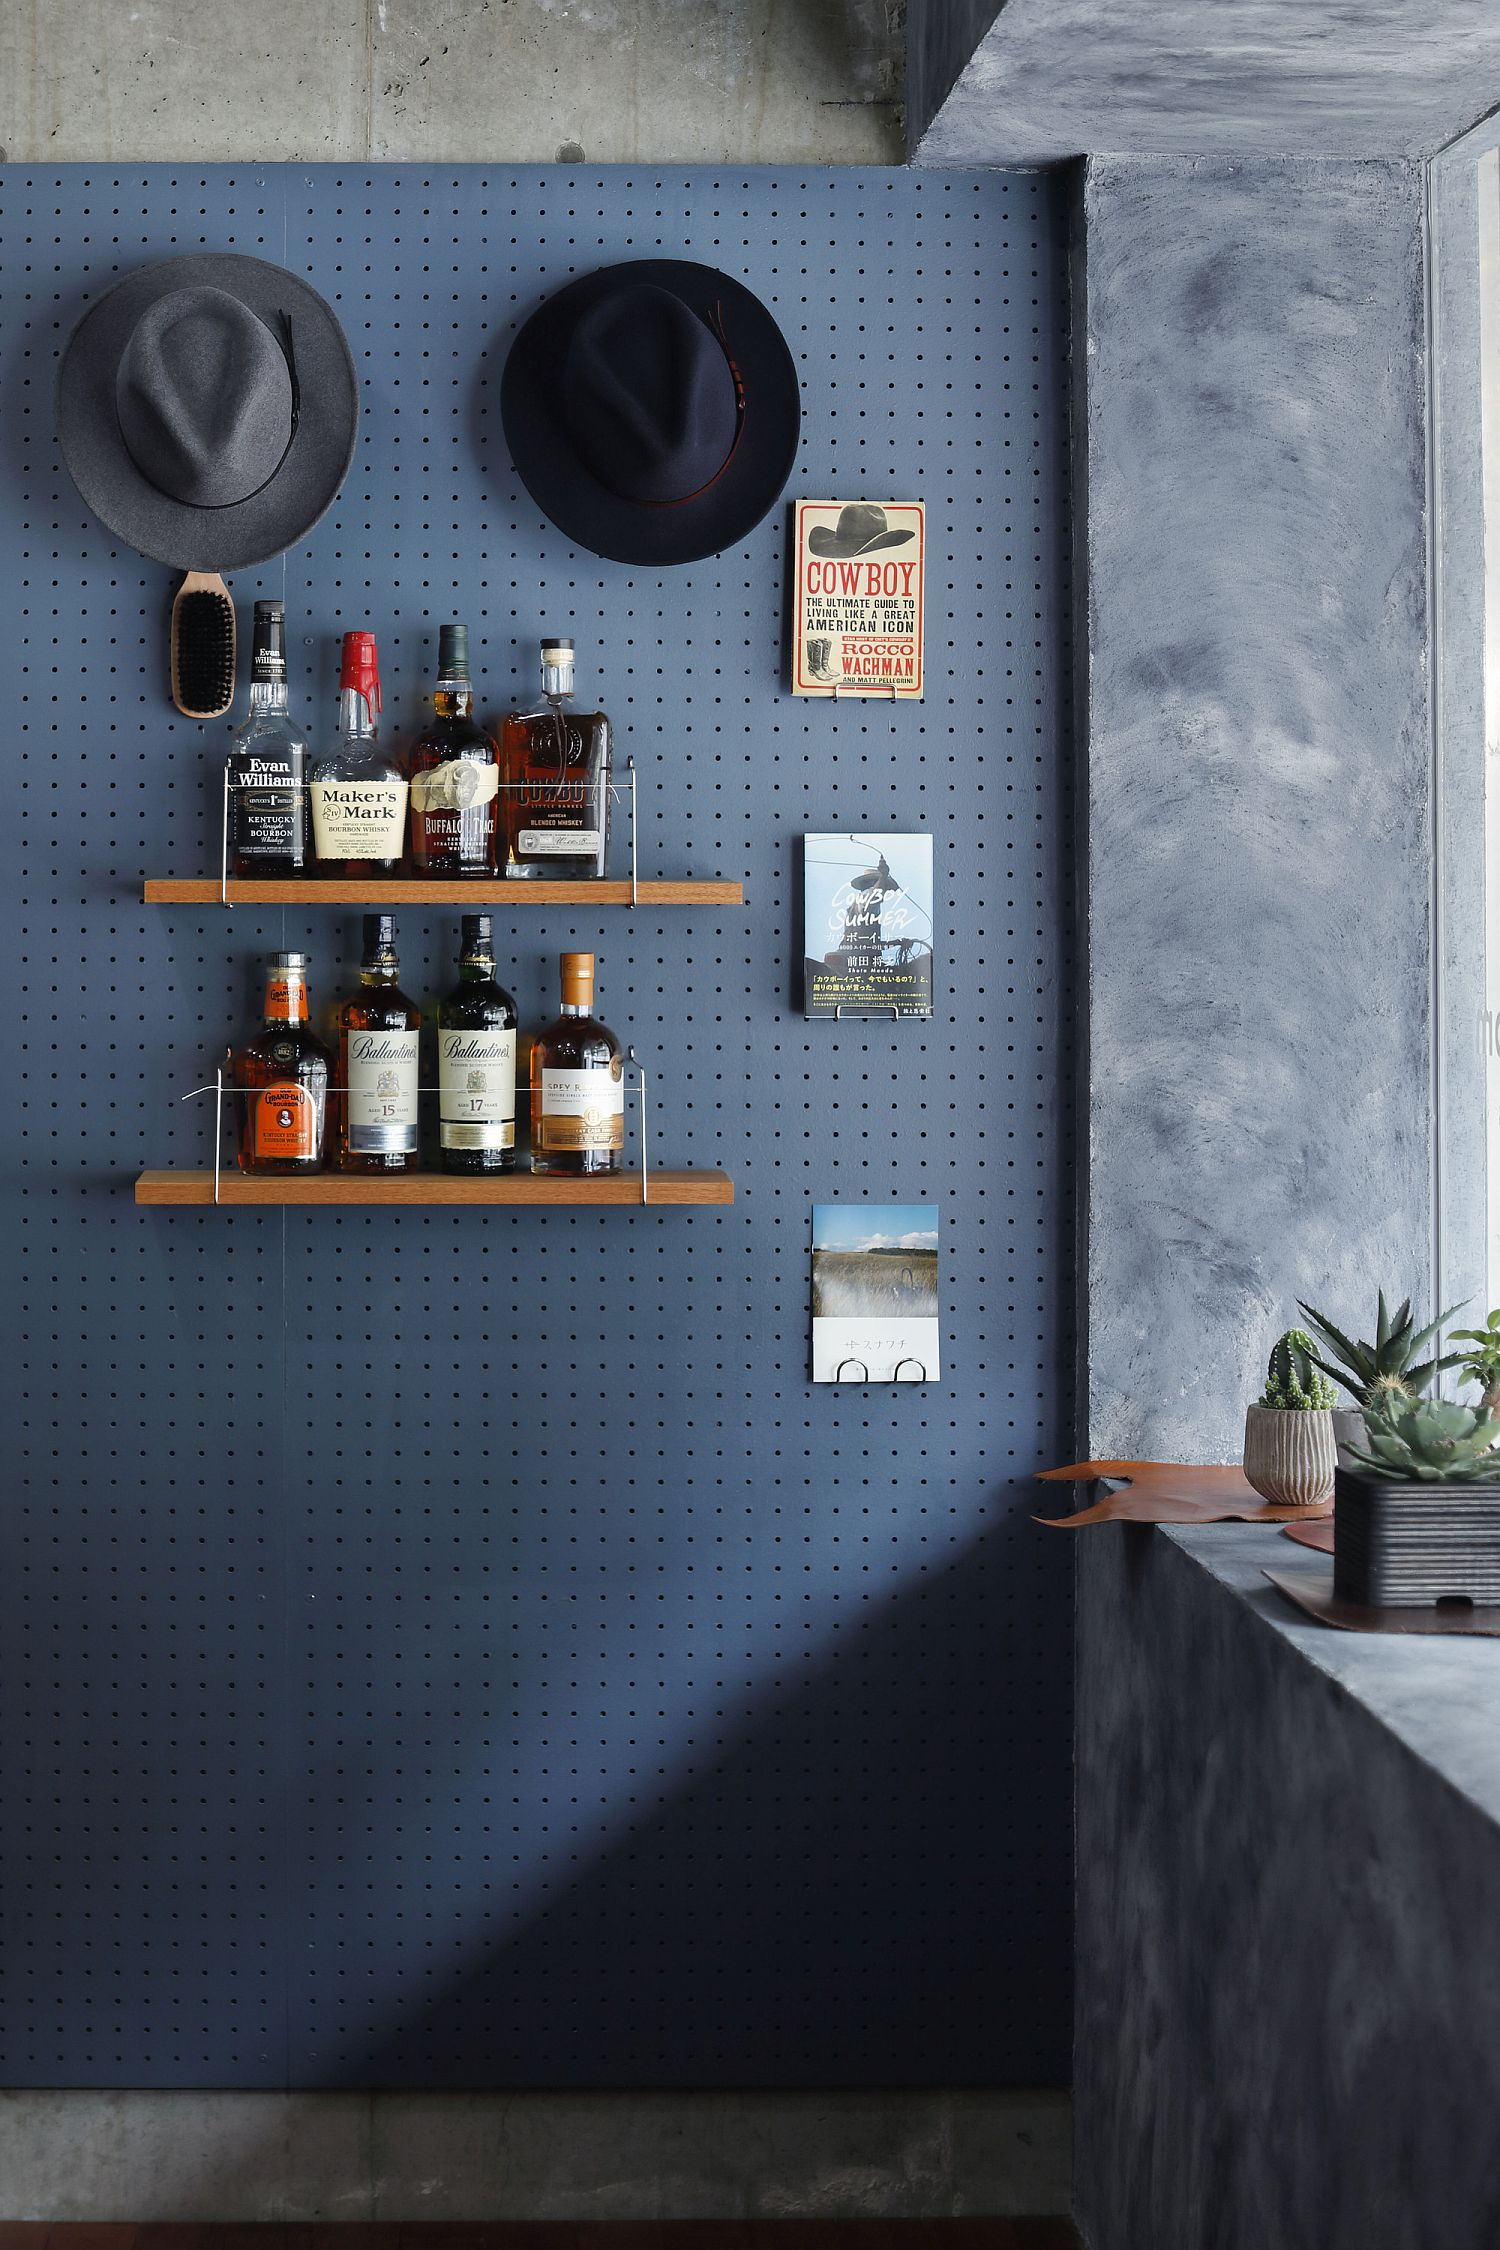 Pegboard-wall-at-the-entrance-of-the-shop-offers-space-to-hang-your-hats-and-coats-96226